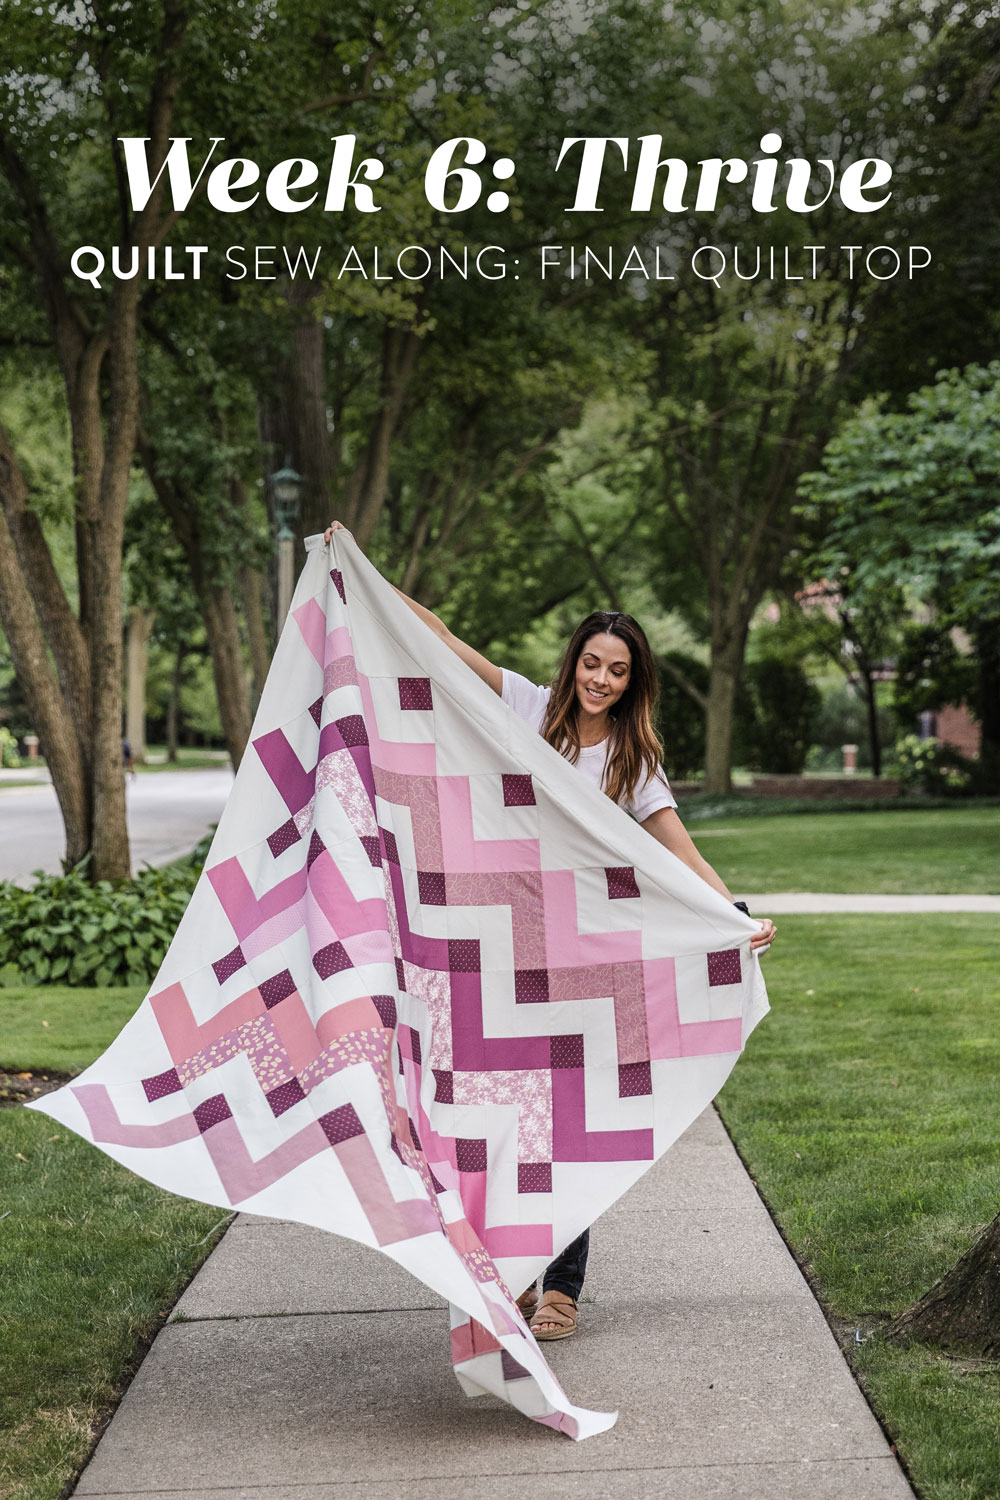 In the final week of the Thrive sew along we sew the finished quilt top. Included is a video tutorial on how to trim and square up your corners! suzyquilts.com #quilt #quiltpattern